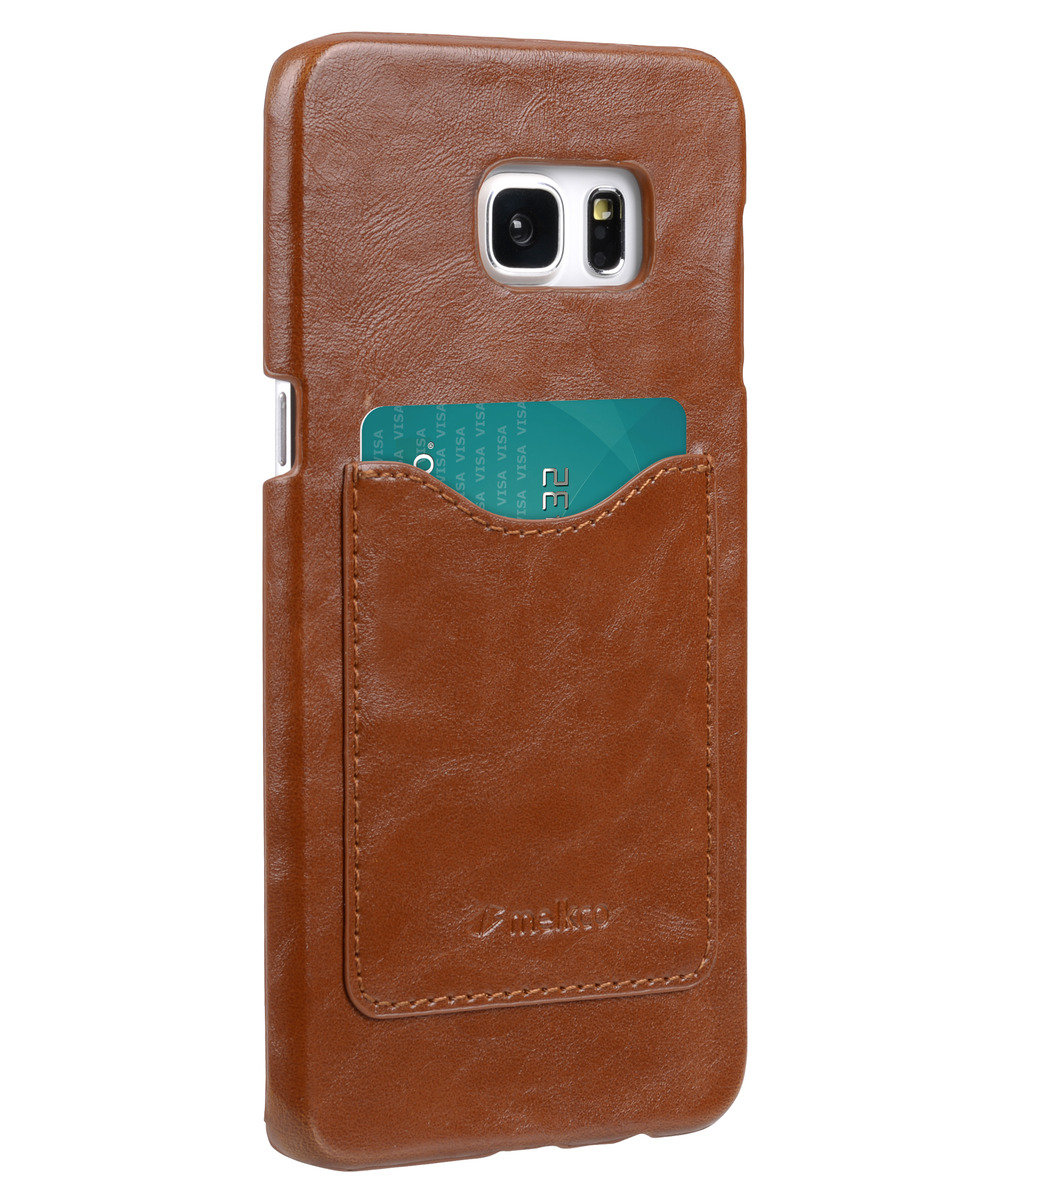 Samsung Galaxy S6 Edge Plus Card Slot Back Cover人造皮手機套 - 啡色